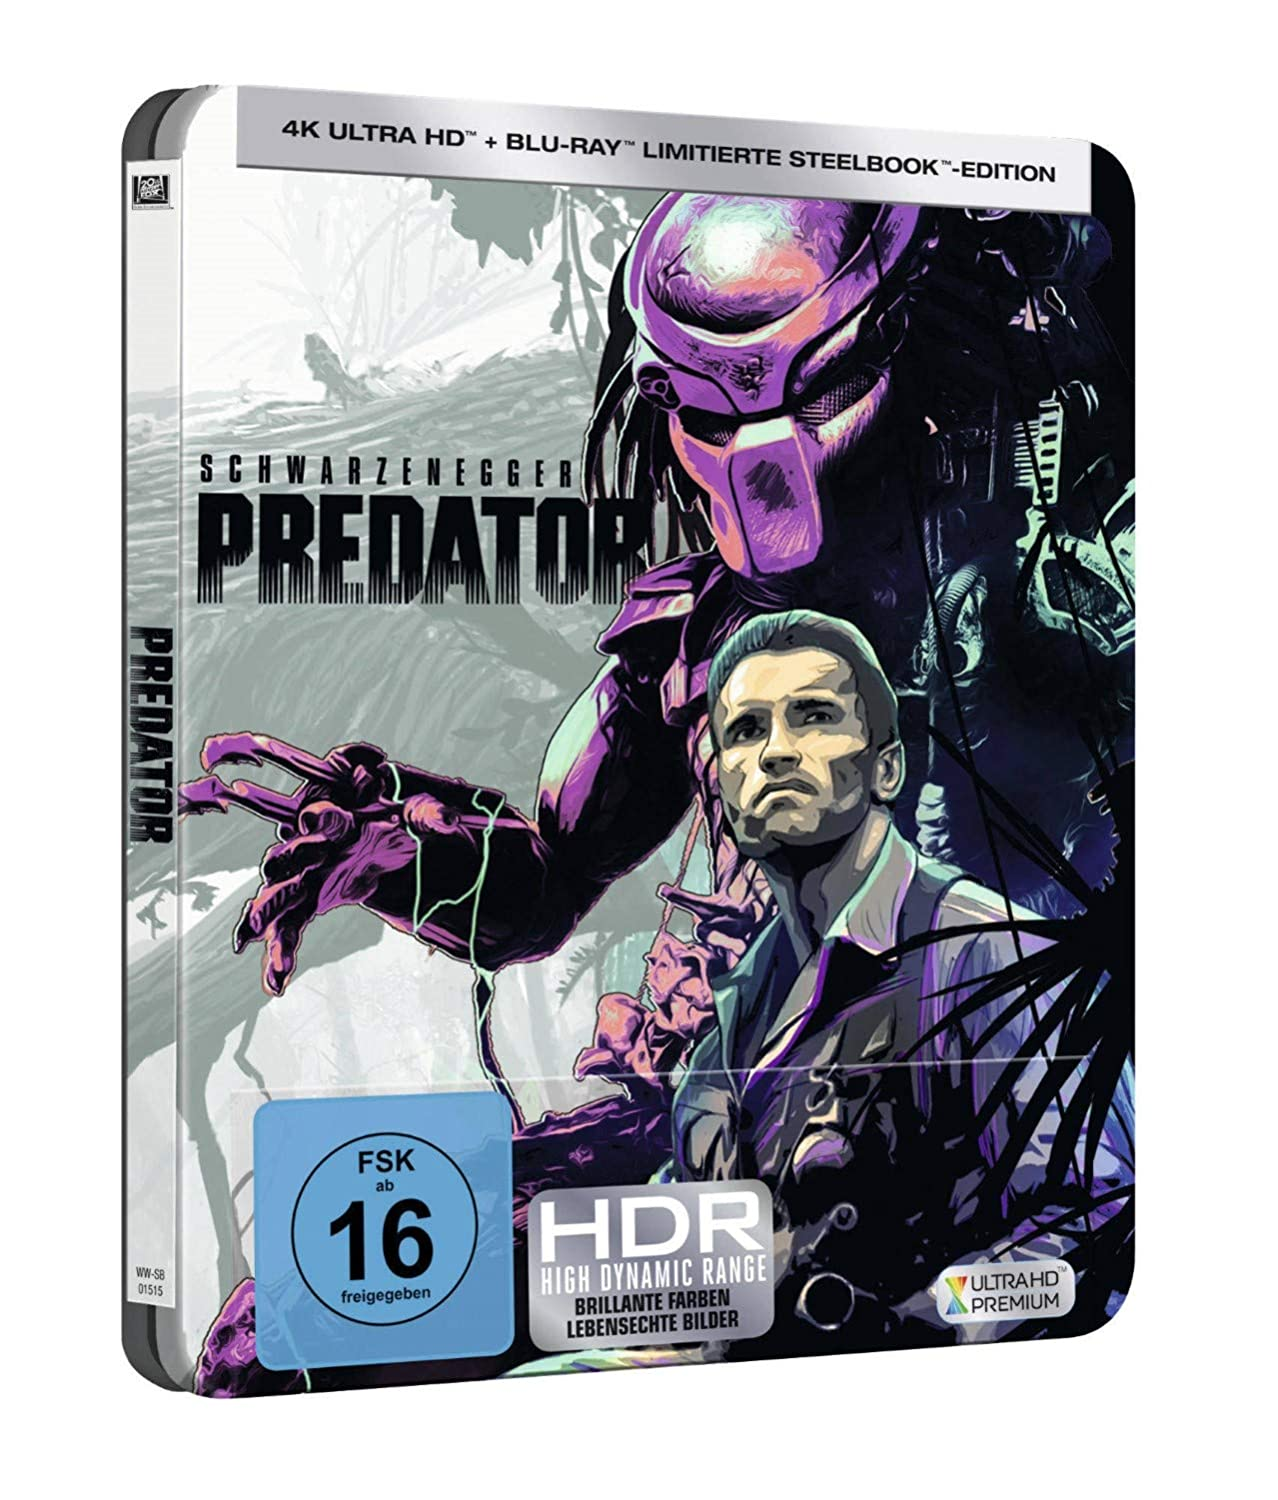 Predator (Steelbook) - Ultra HD Blu-ray [4k + Blu-ray Disc]